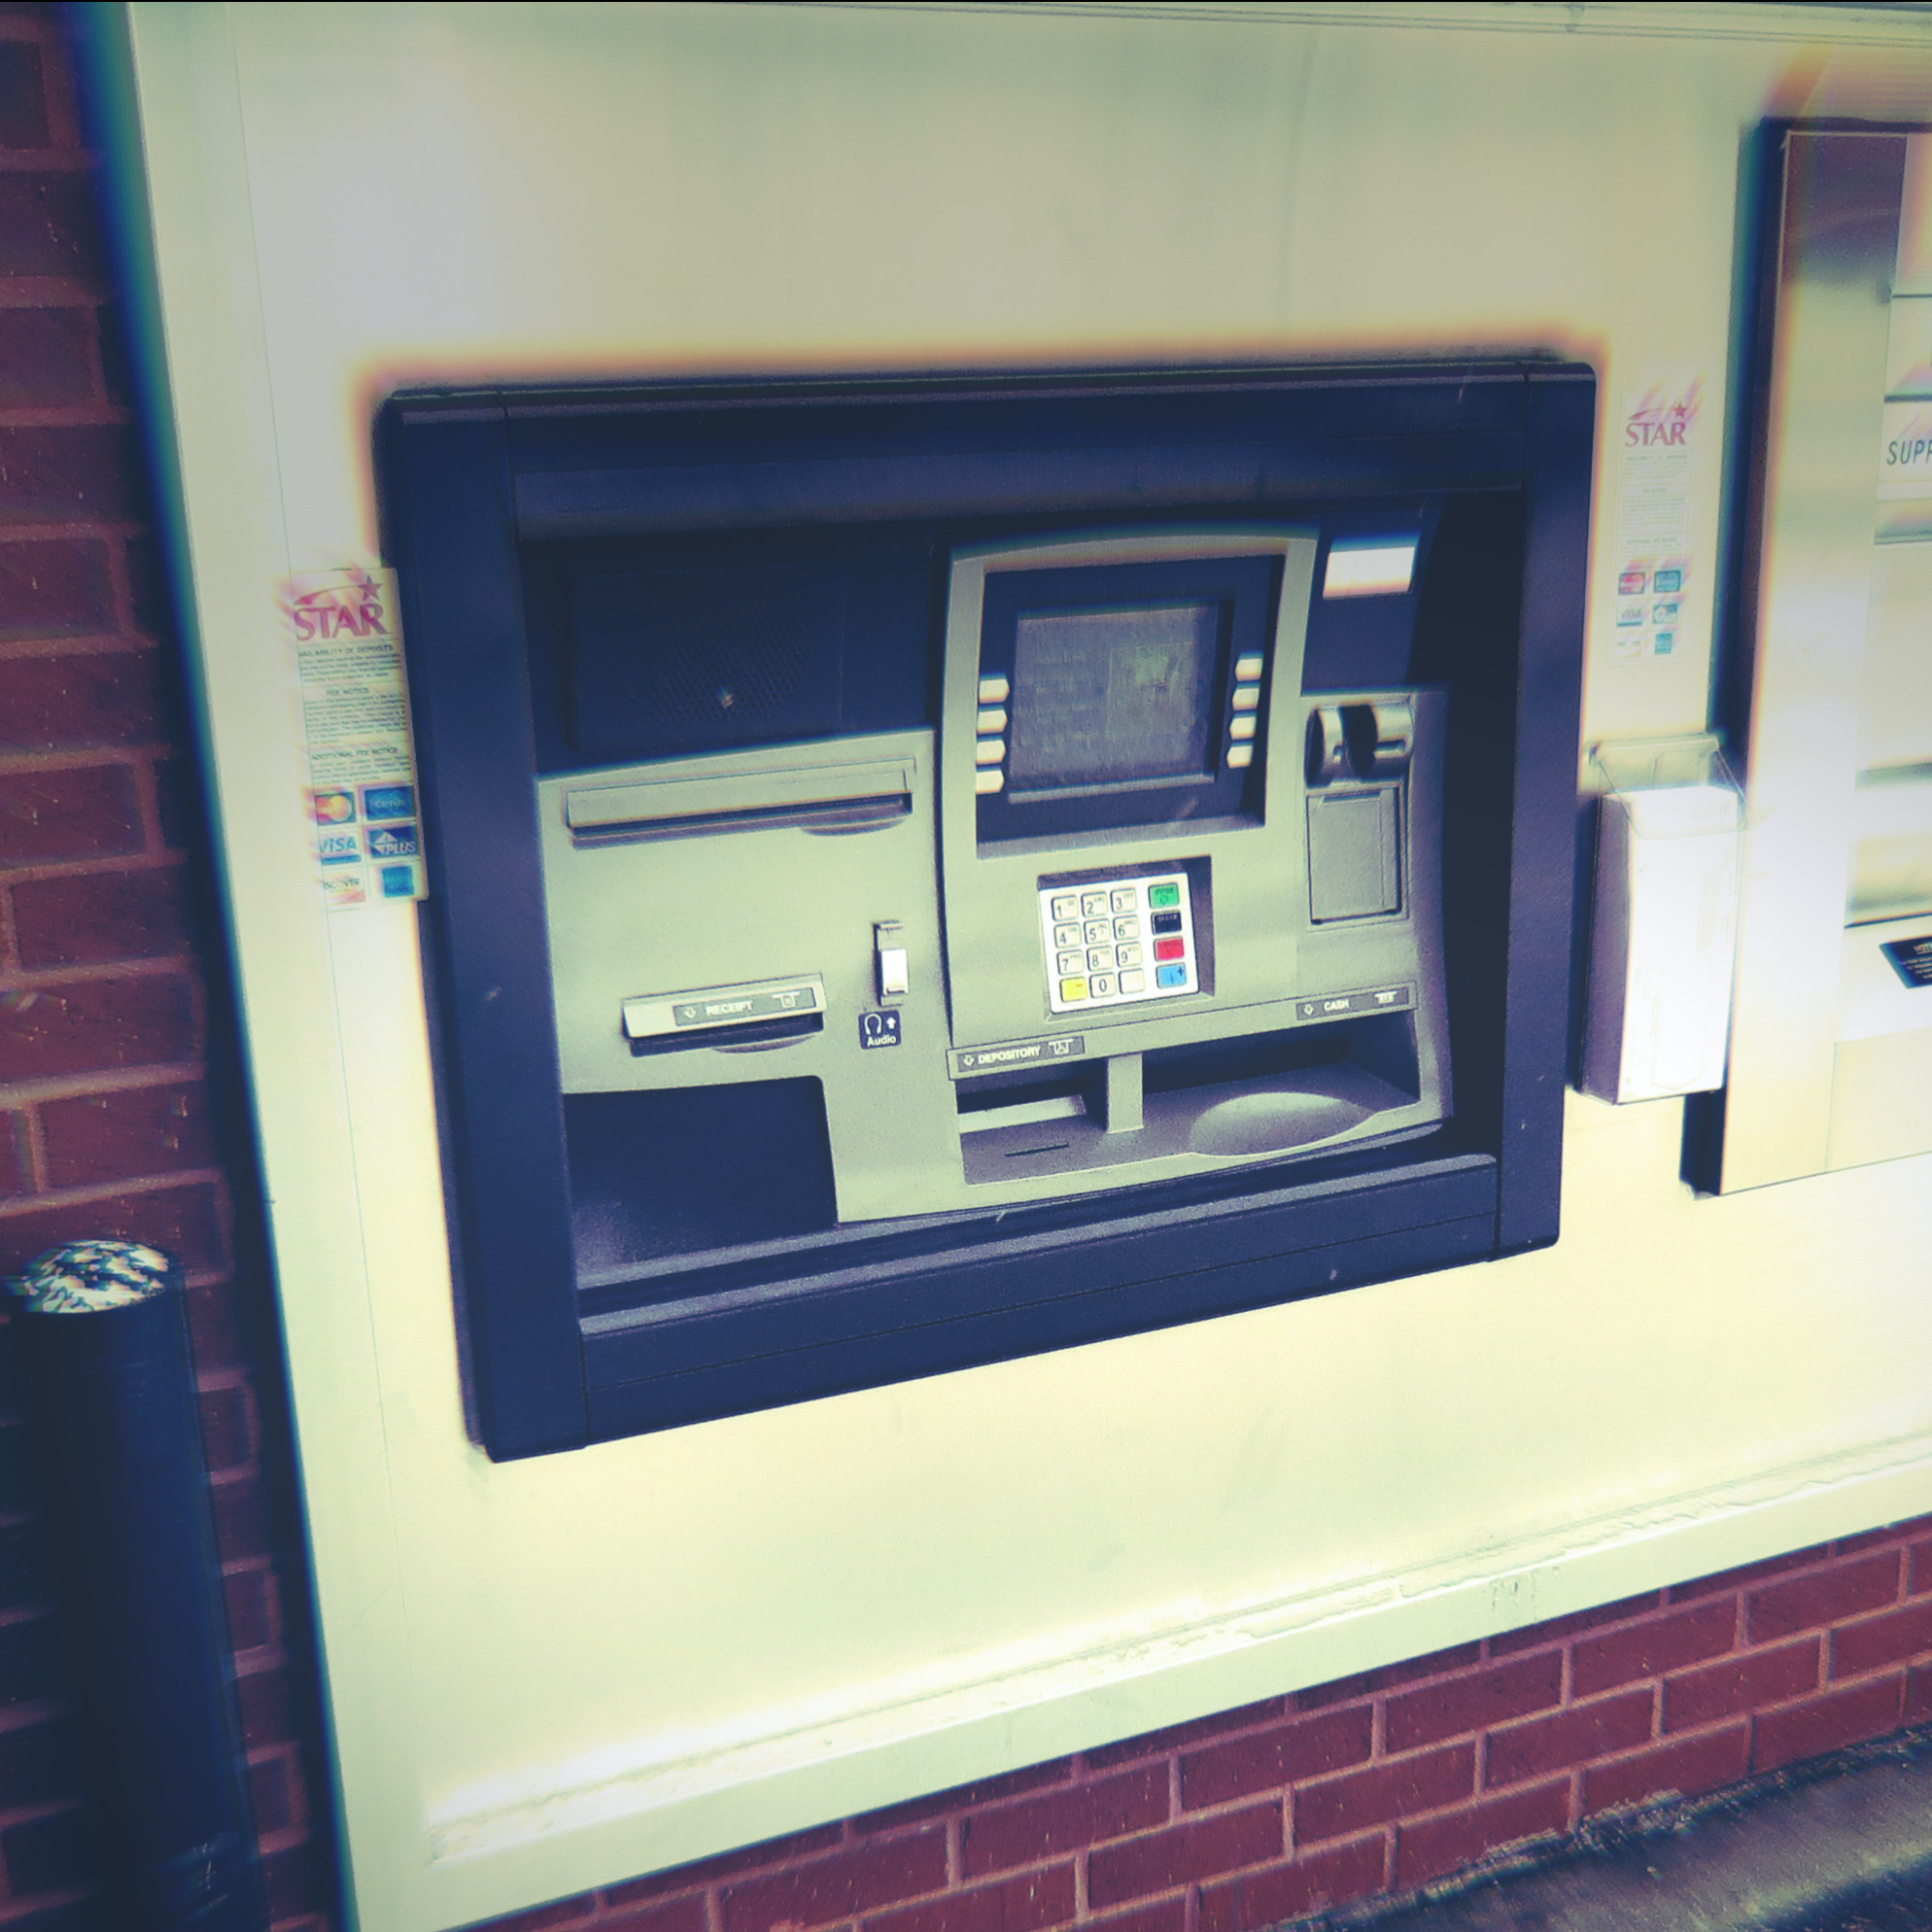 it is 8 p.m.and your customer needs their atm pin reset